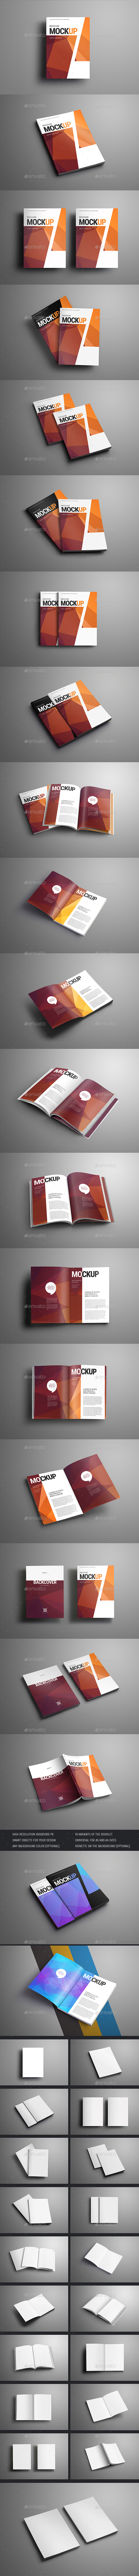 19 Mockups of the Brochure, Catalog Format A5 and A4 - Product Mock-Ups Graphics